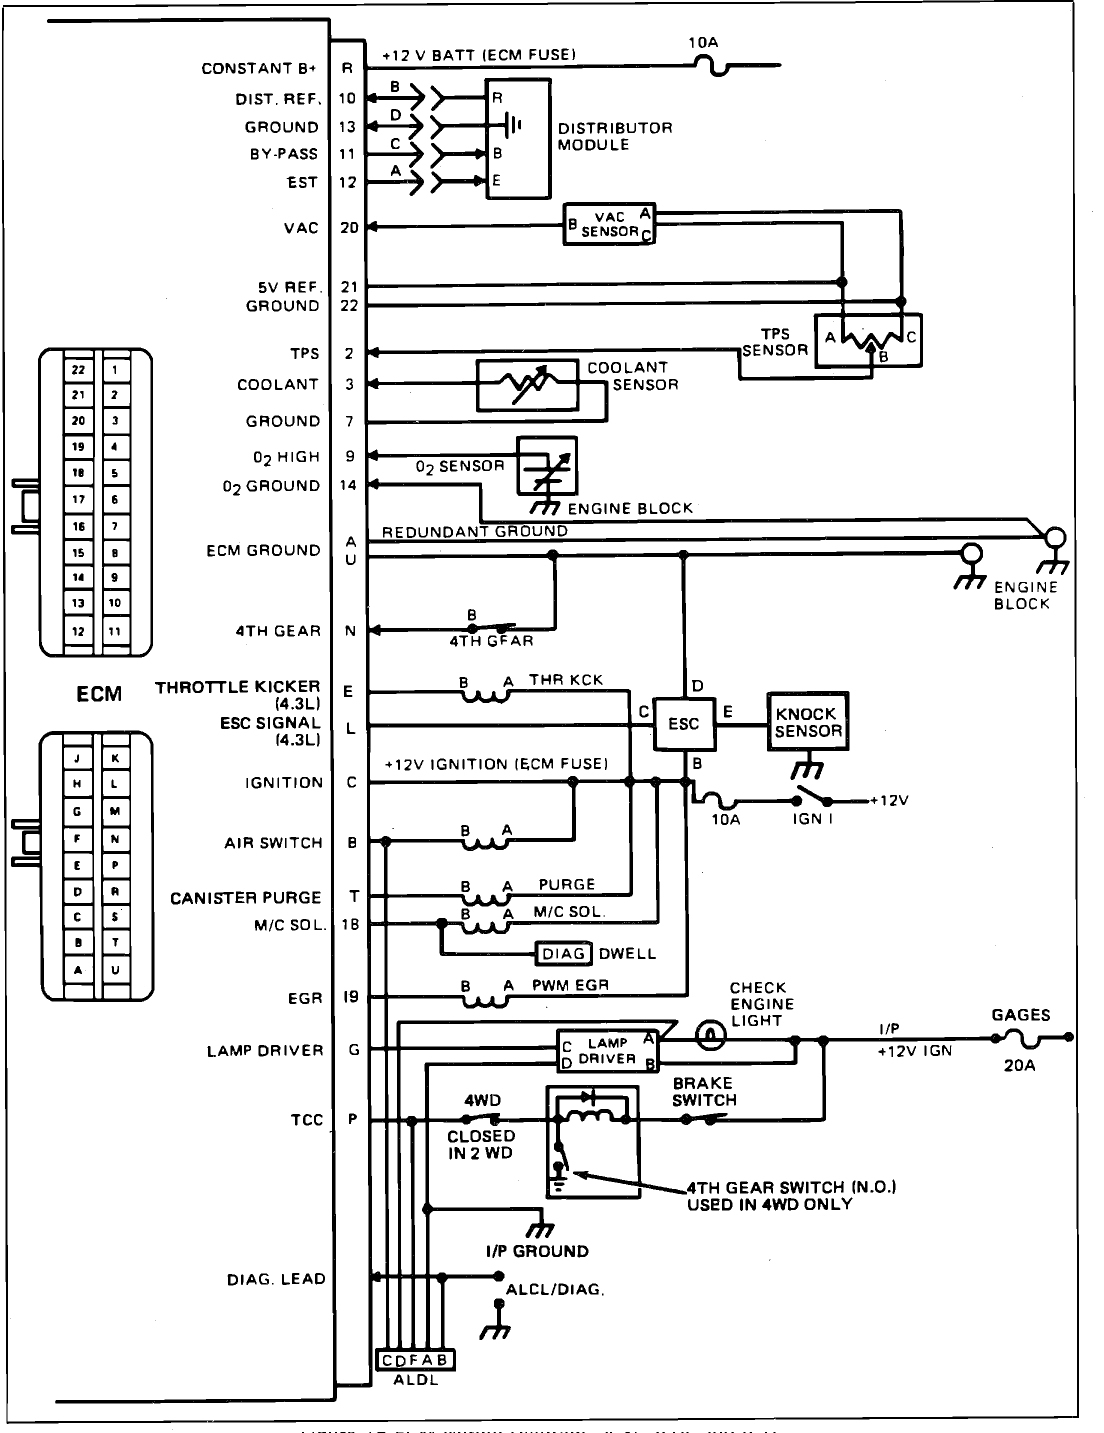 Chevy G20 Wiring Diagram - All Wiring Diagram - 1991 Chevy Truck Wiring Diagram